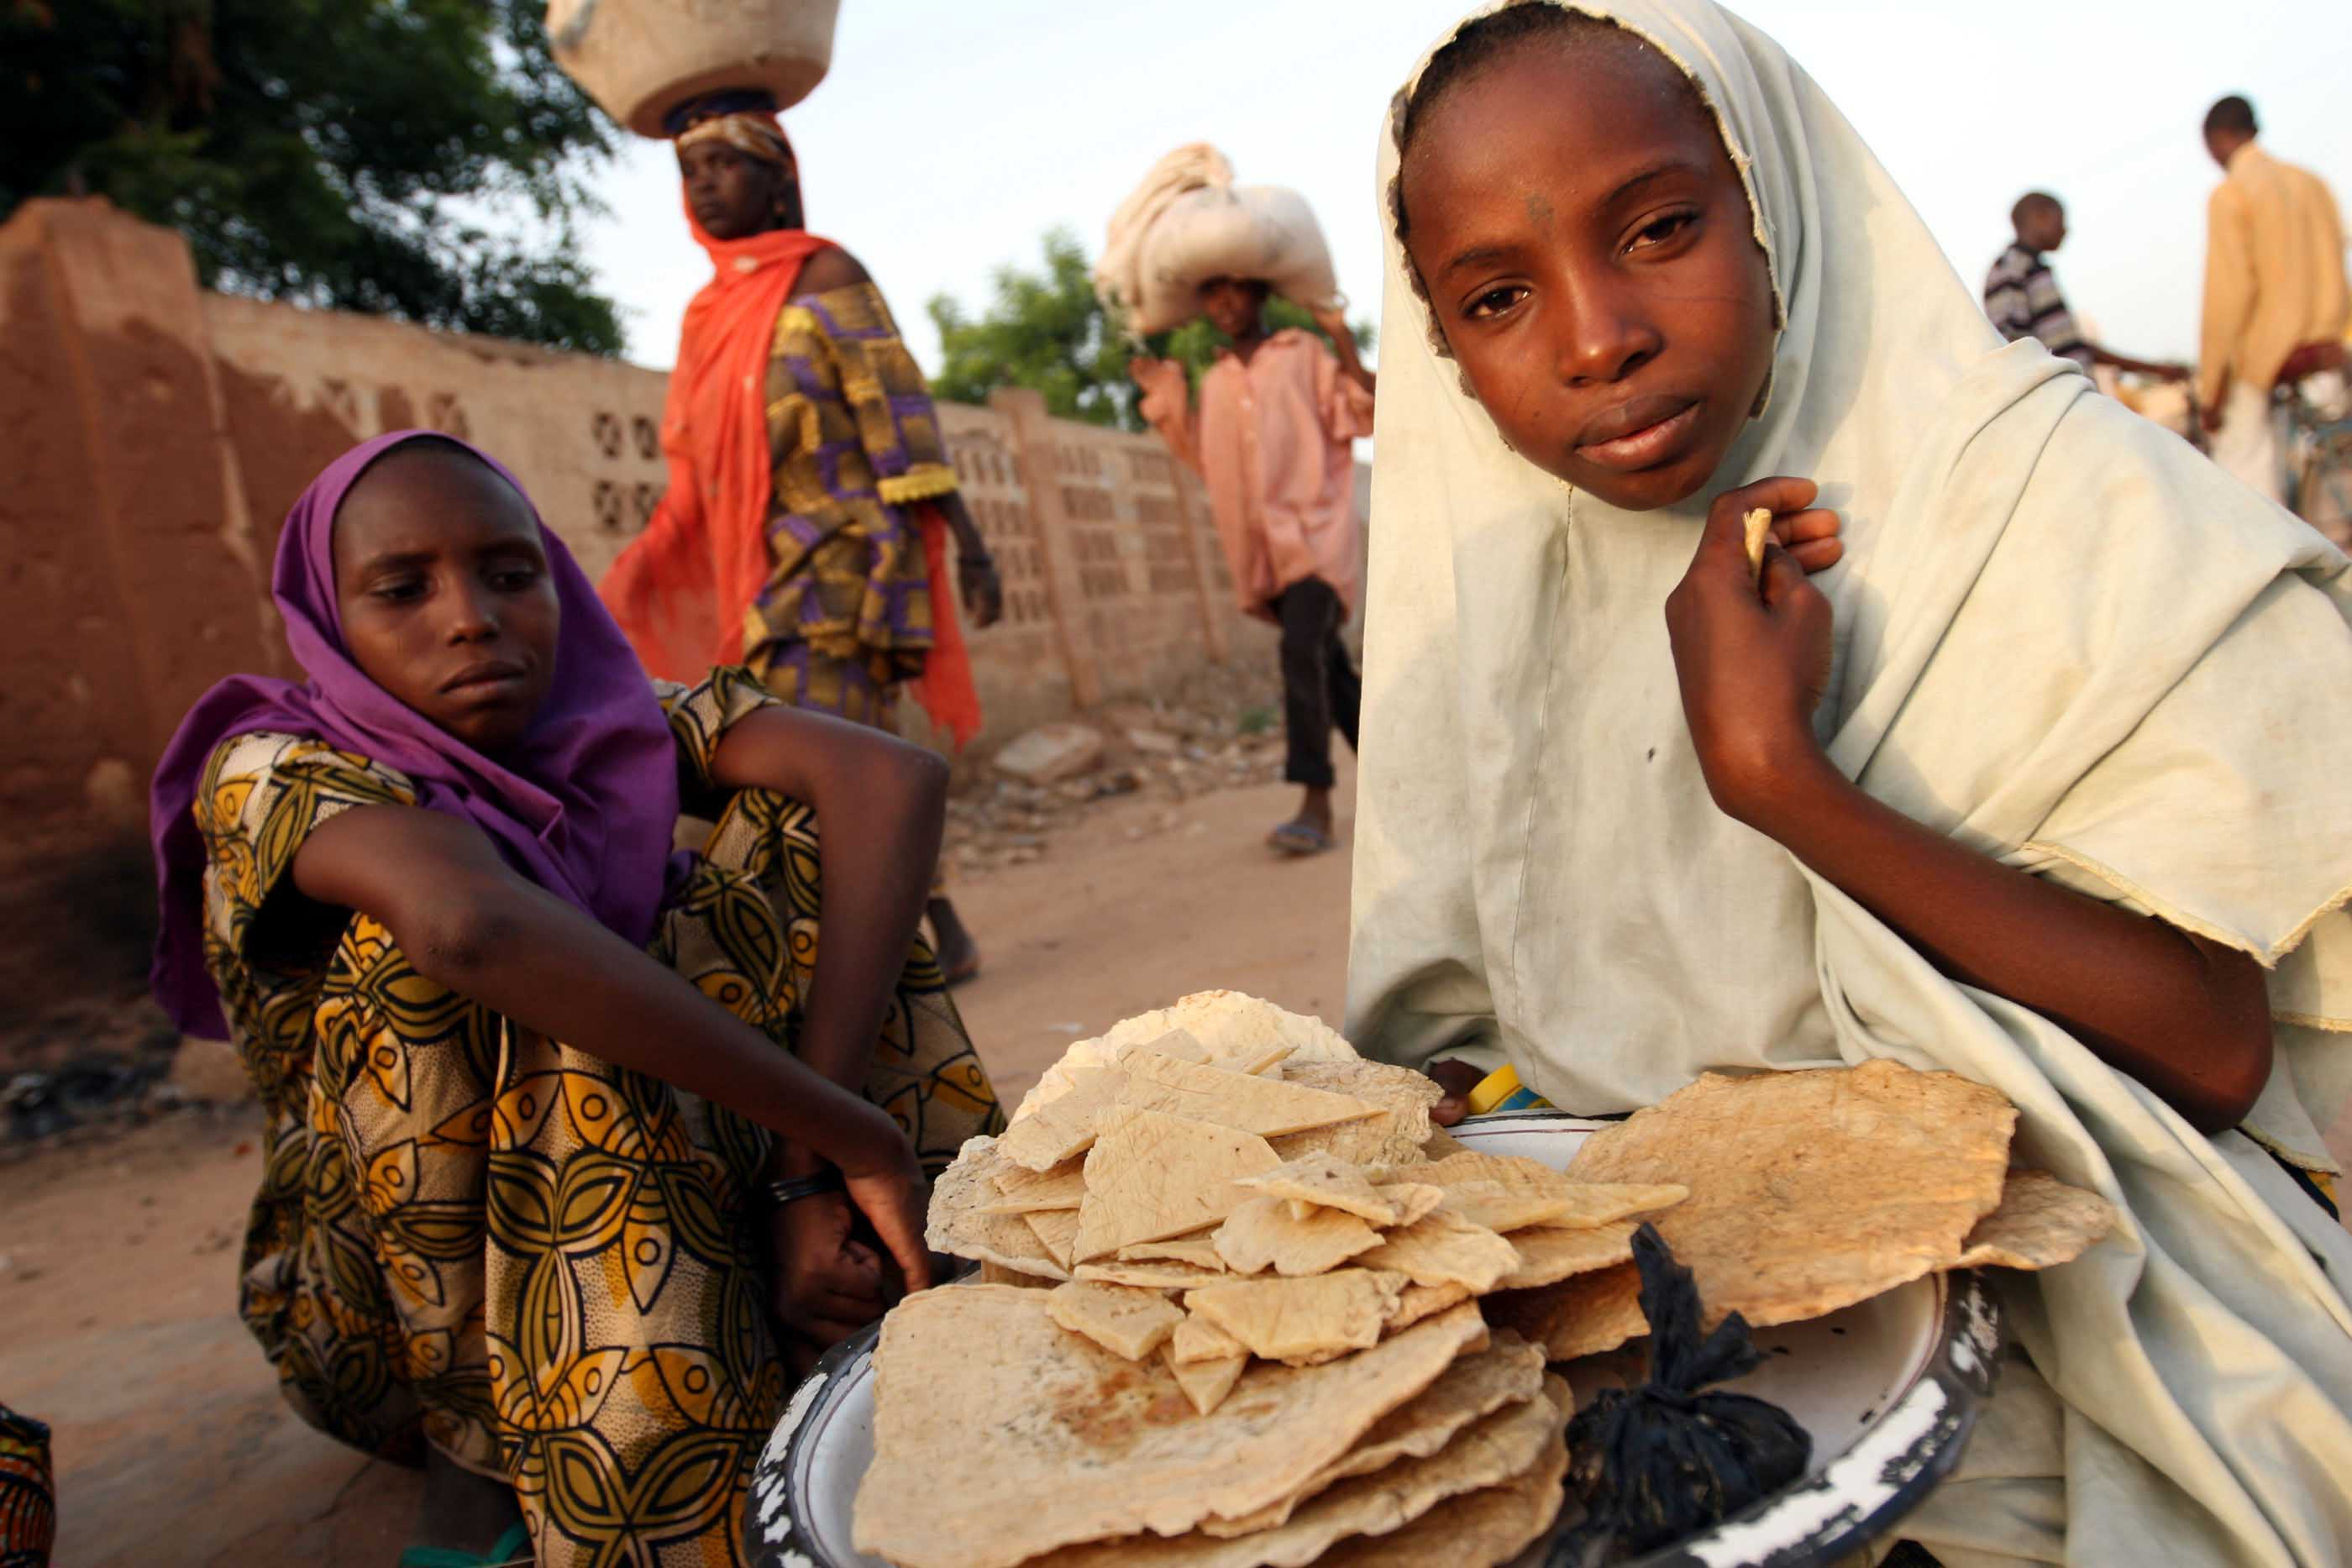 A girl sells locally made cheese in Zinder, Southern Niger on 16 September 2007.